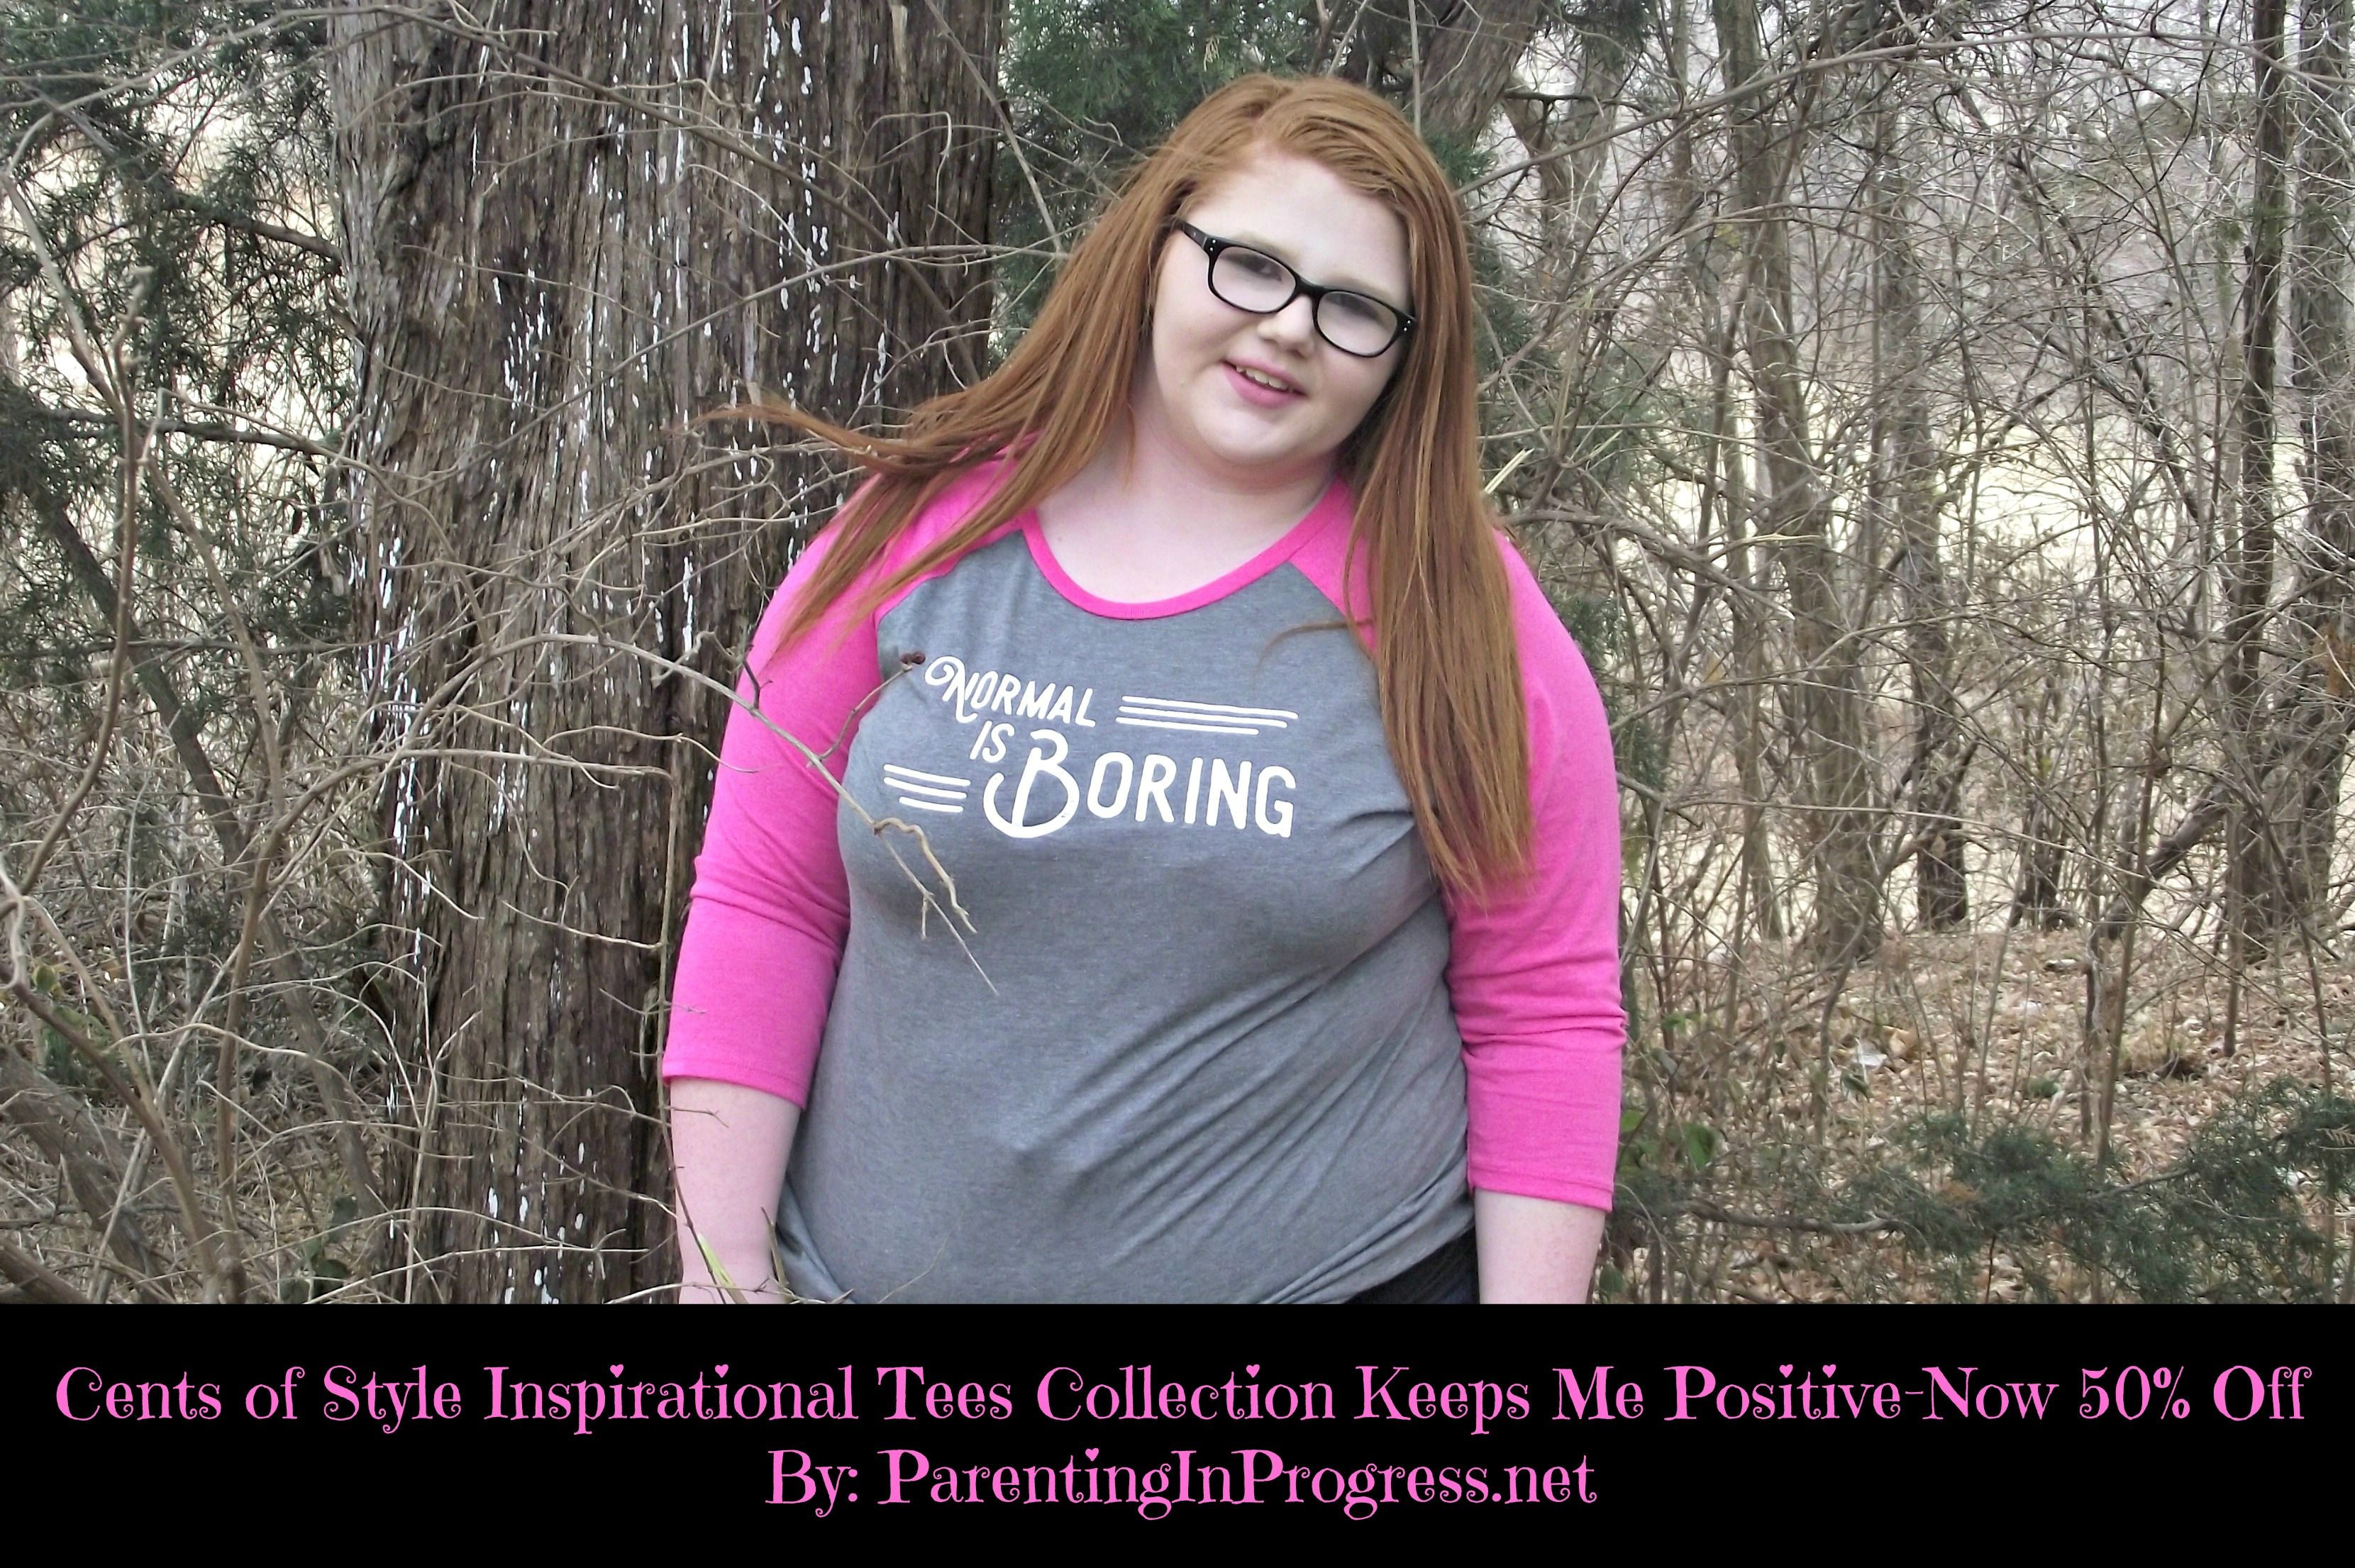 Cents of Style Inspirational tees 50% off this weekend. Which shirt inspires you? #ad #InspiationalTees #FashionFriday http://parentinginprogress.net/centsofstylejan